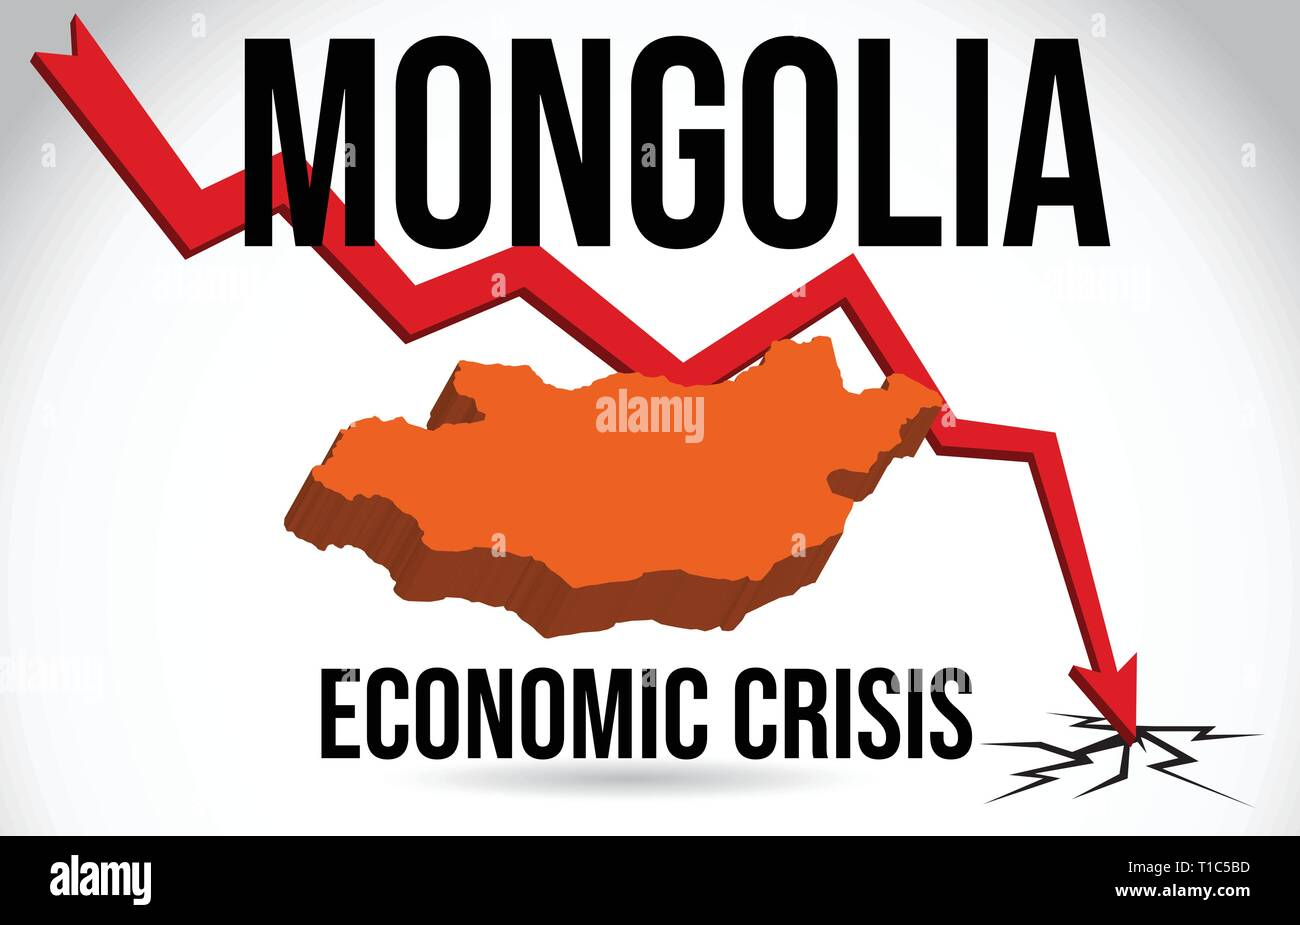 Mongolia Map Financial Crisis Economic Collapse Market Crash Global Meltdown Vector Illustration. Stock Vector